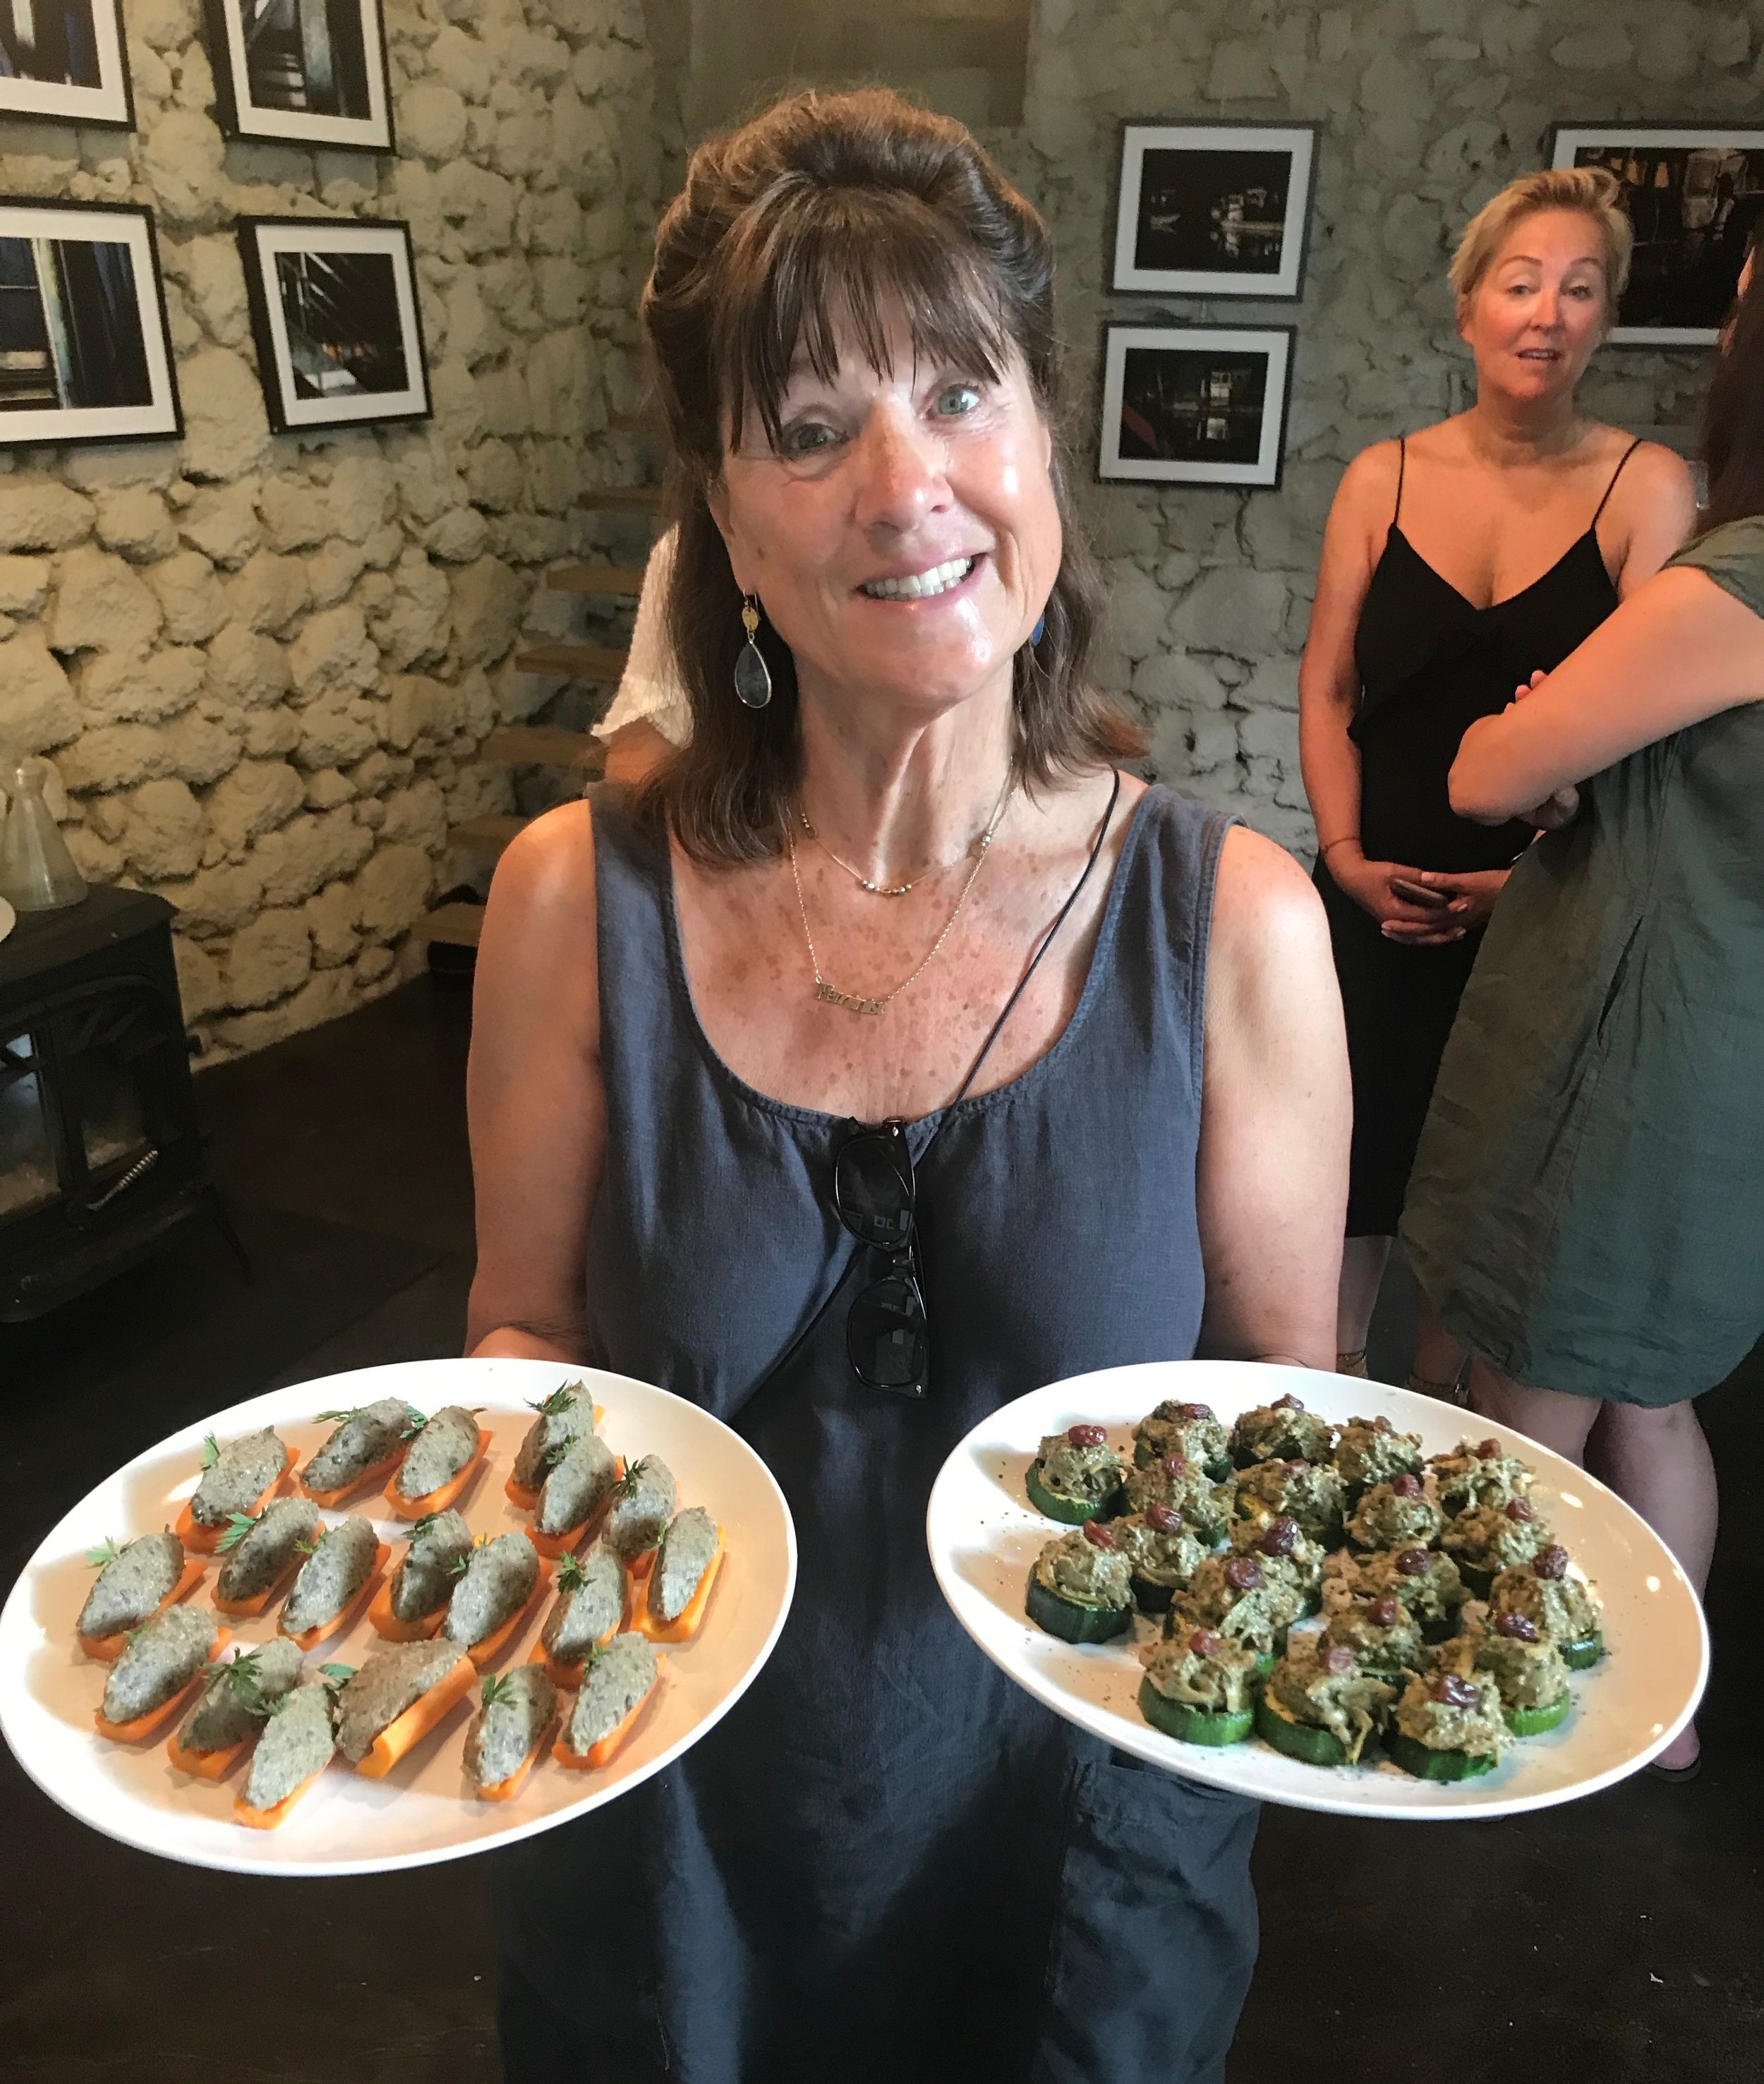 Yvonne recommends plenty of plant-based food in your diet. But you need to eat lots of other things too